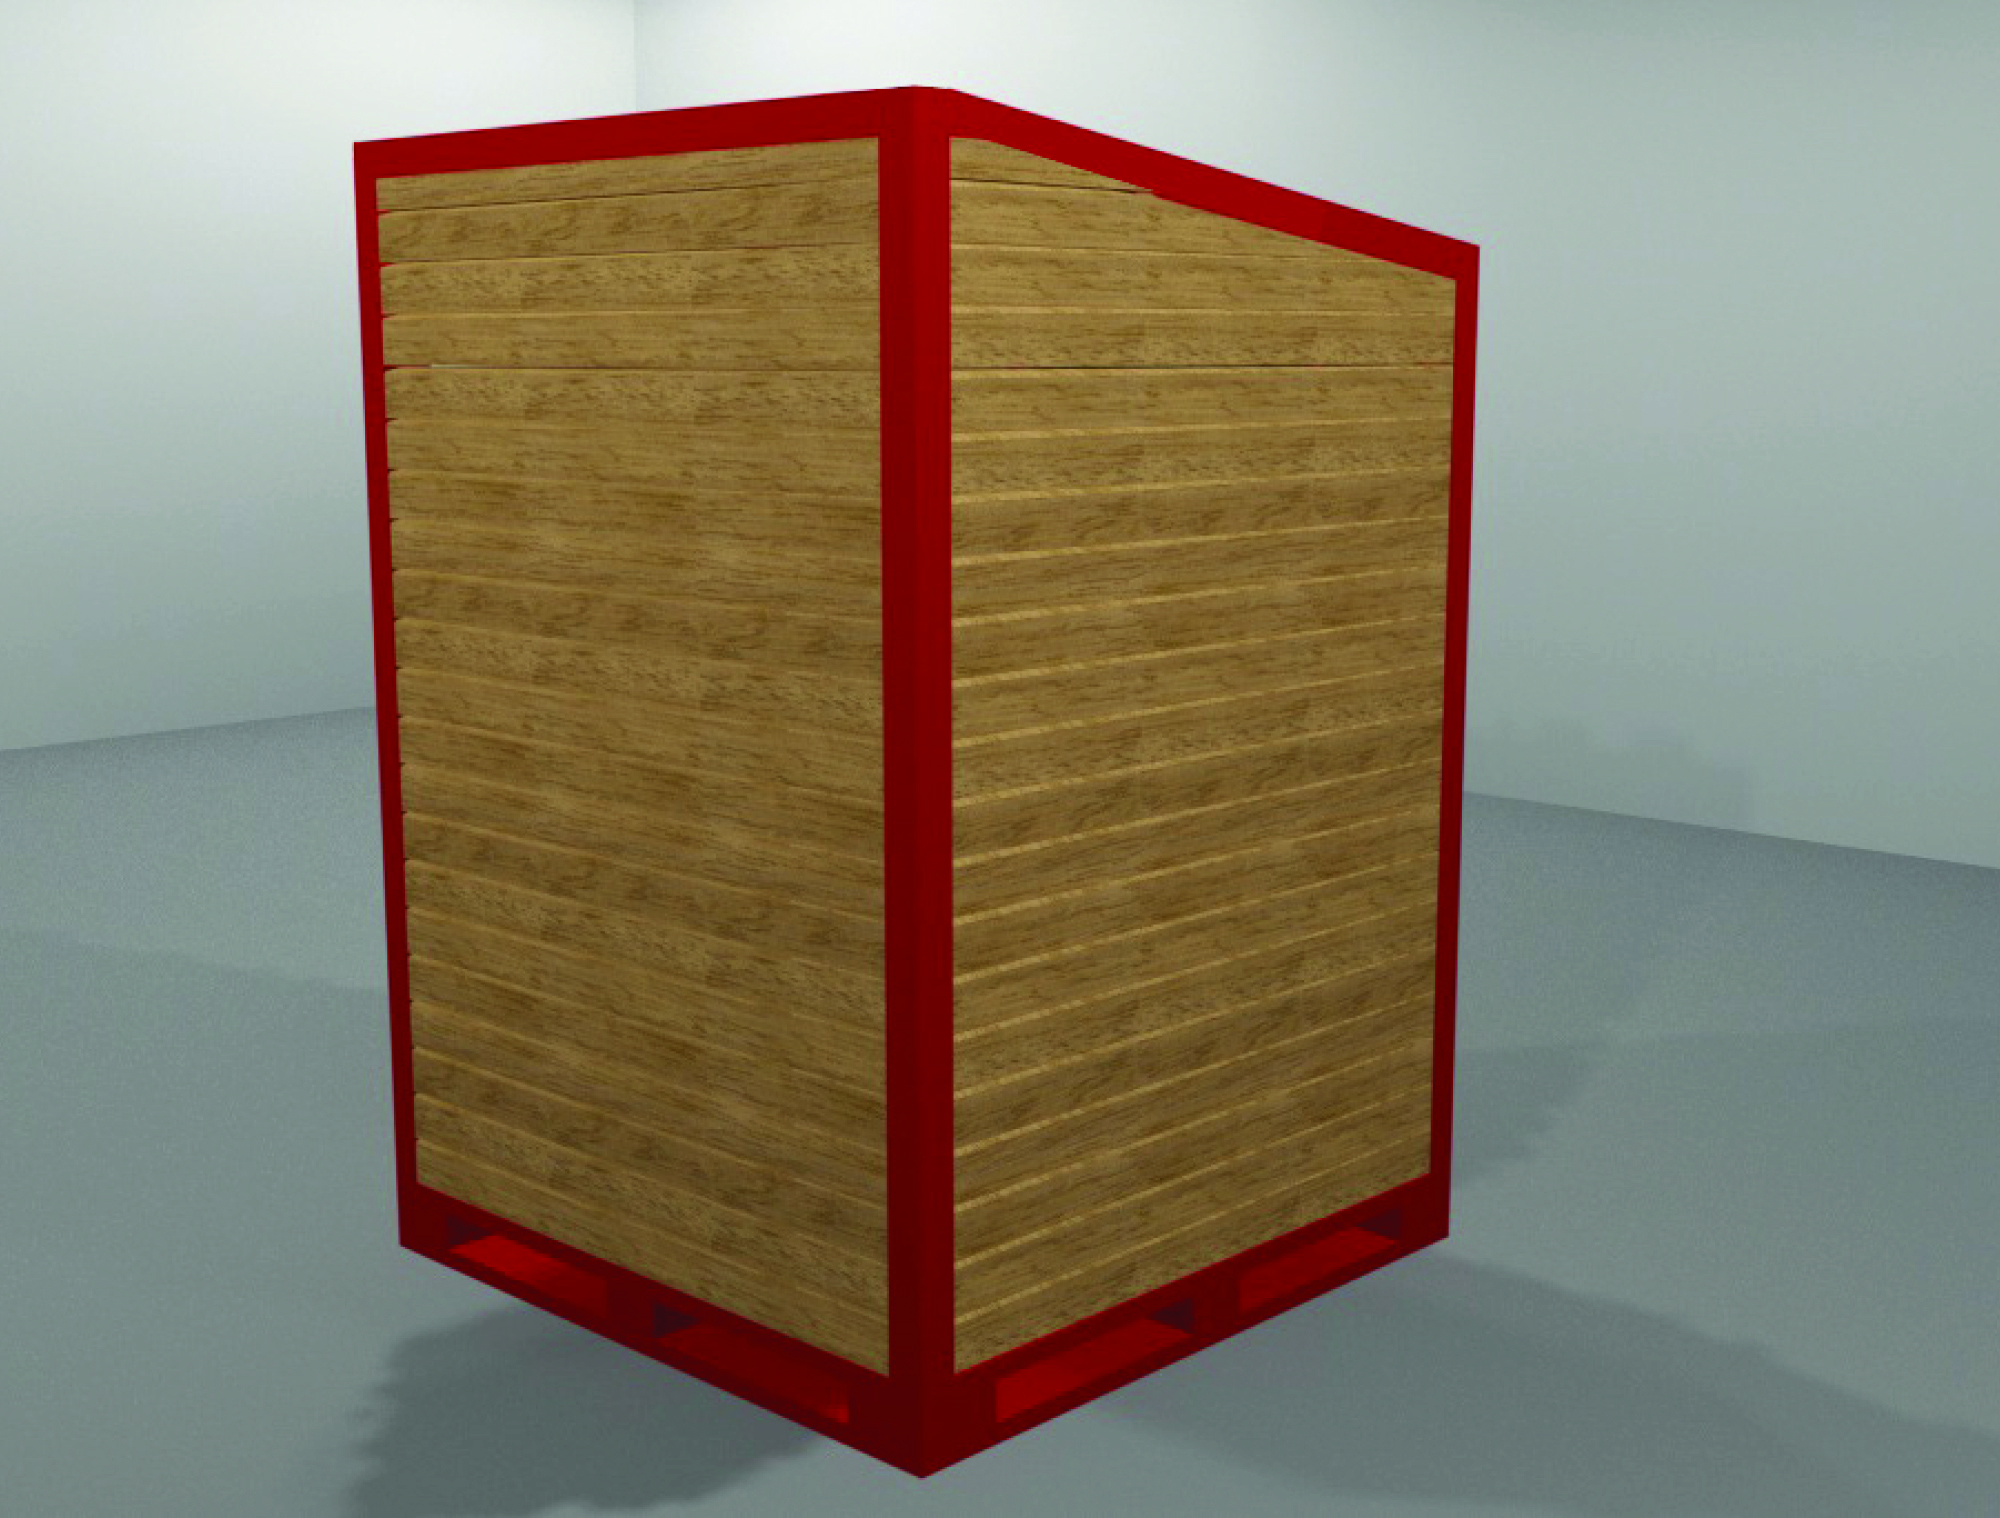 cm stand 3D render 4